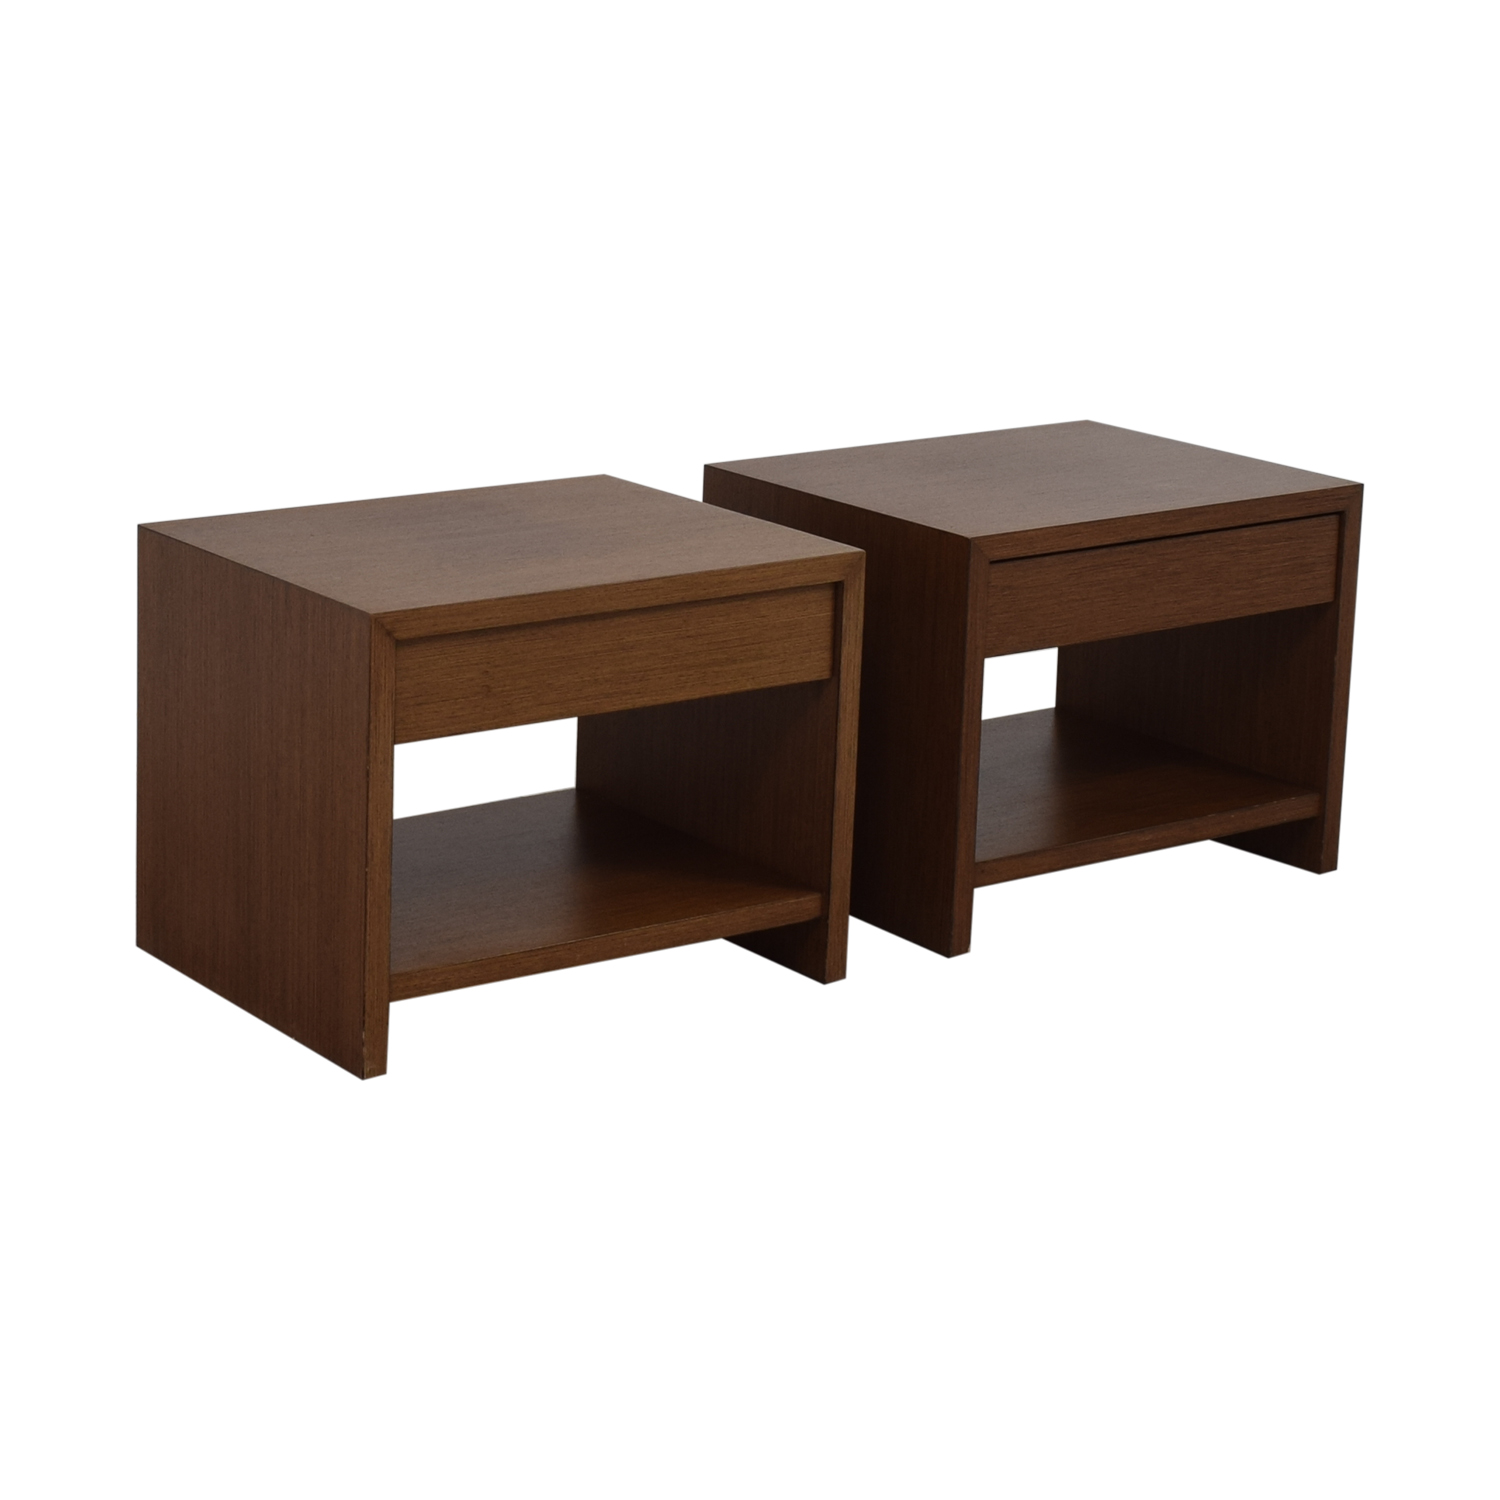 Desiron Desiron Chiseled Side Tables on sale